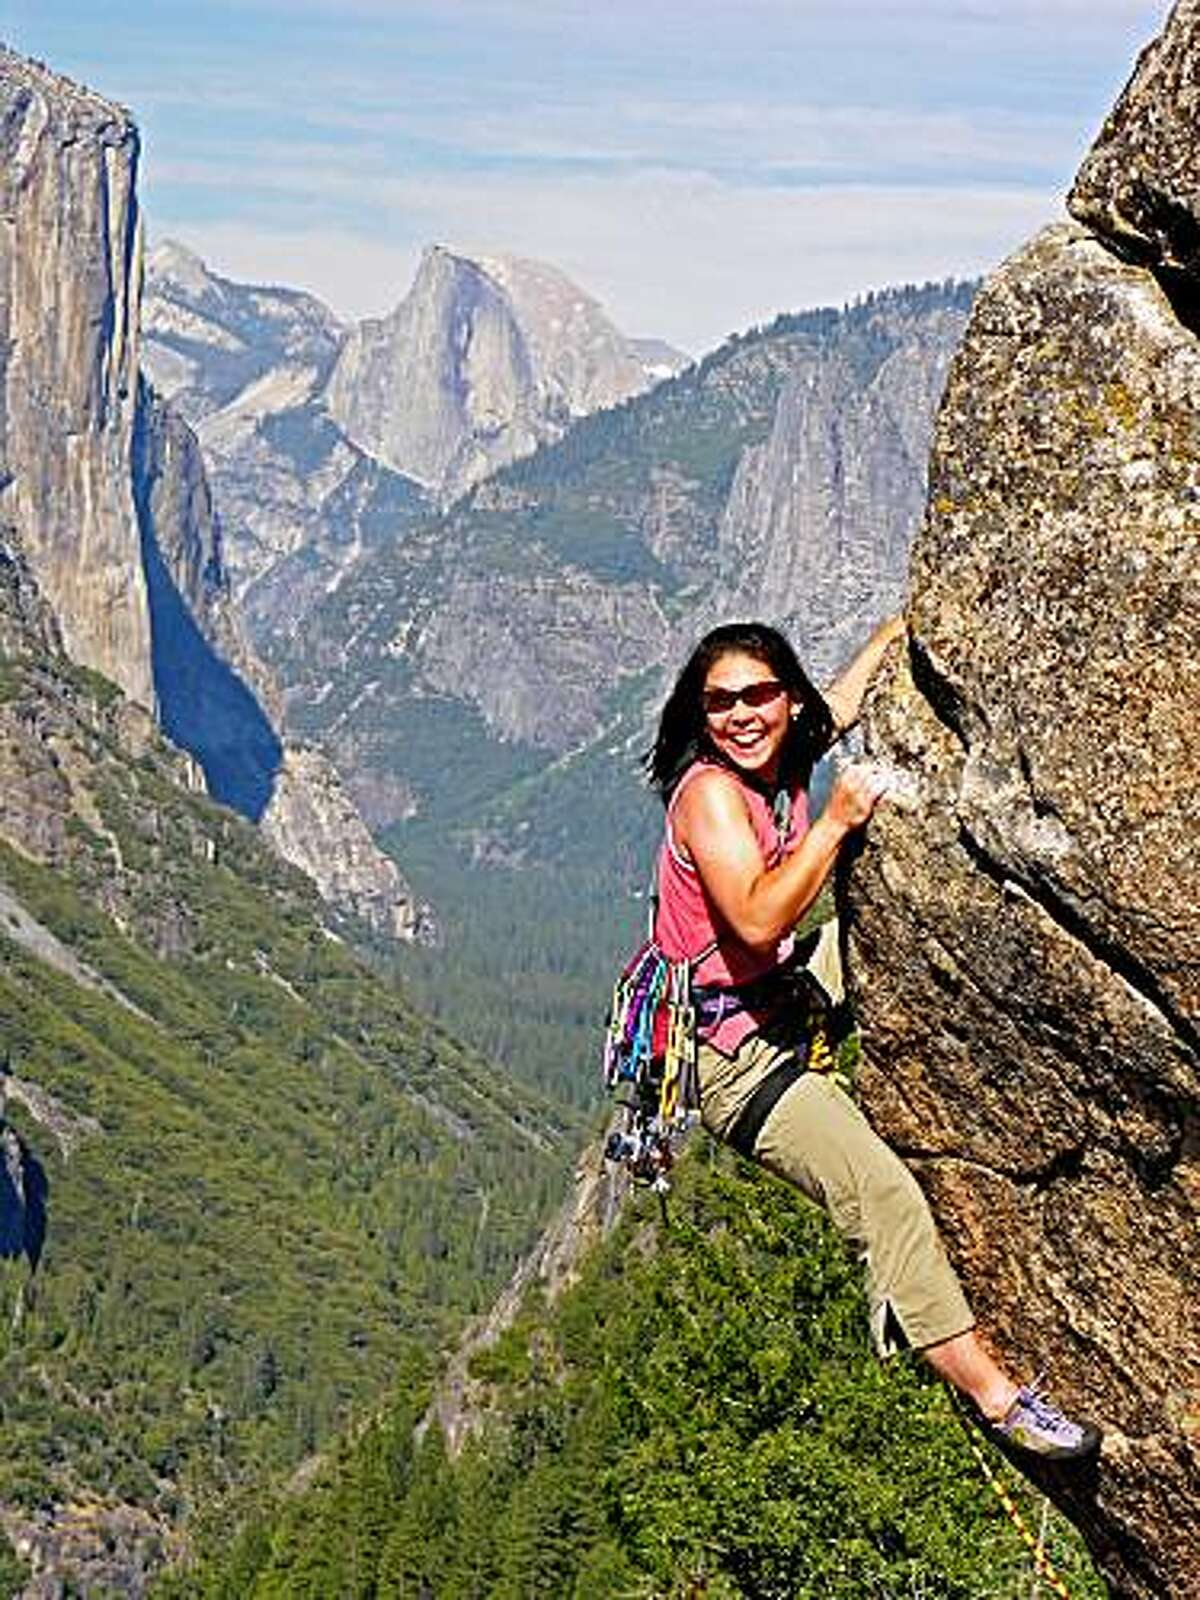 Theresa Ho worked at the Yosemite Mountaineering School before she was badly injured while hiking in the park two years ago. In this photo, she's climbing Yosemite's Turtleback Dome. El Capitan is on the left, and Half Dome is in the background.